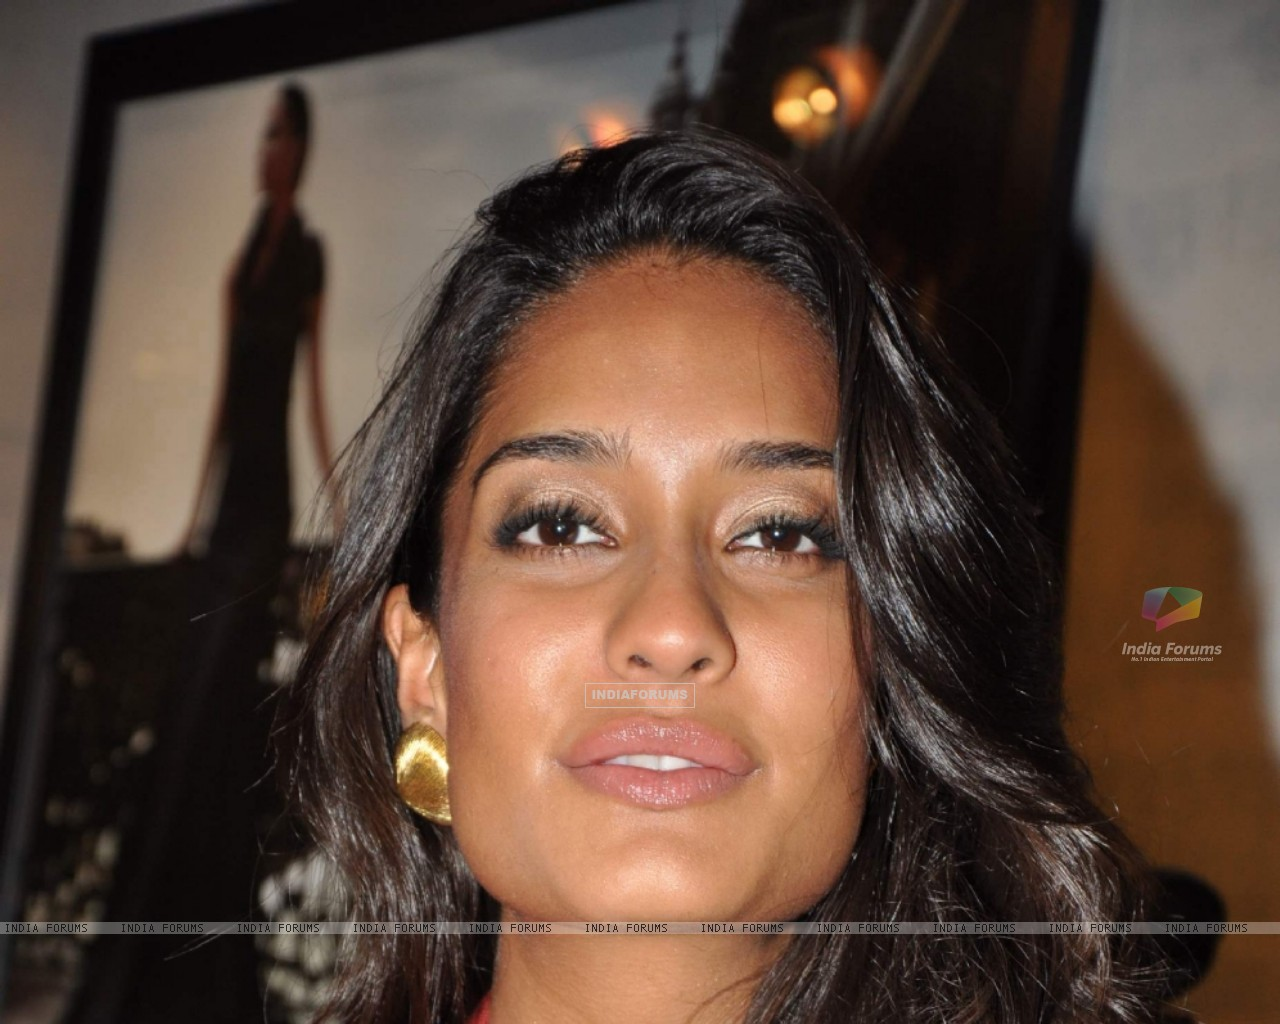 Bollywood Model Turned Actress Lisa Haydon Elle Magazines